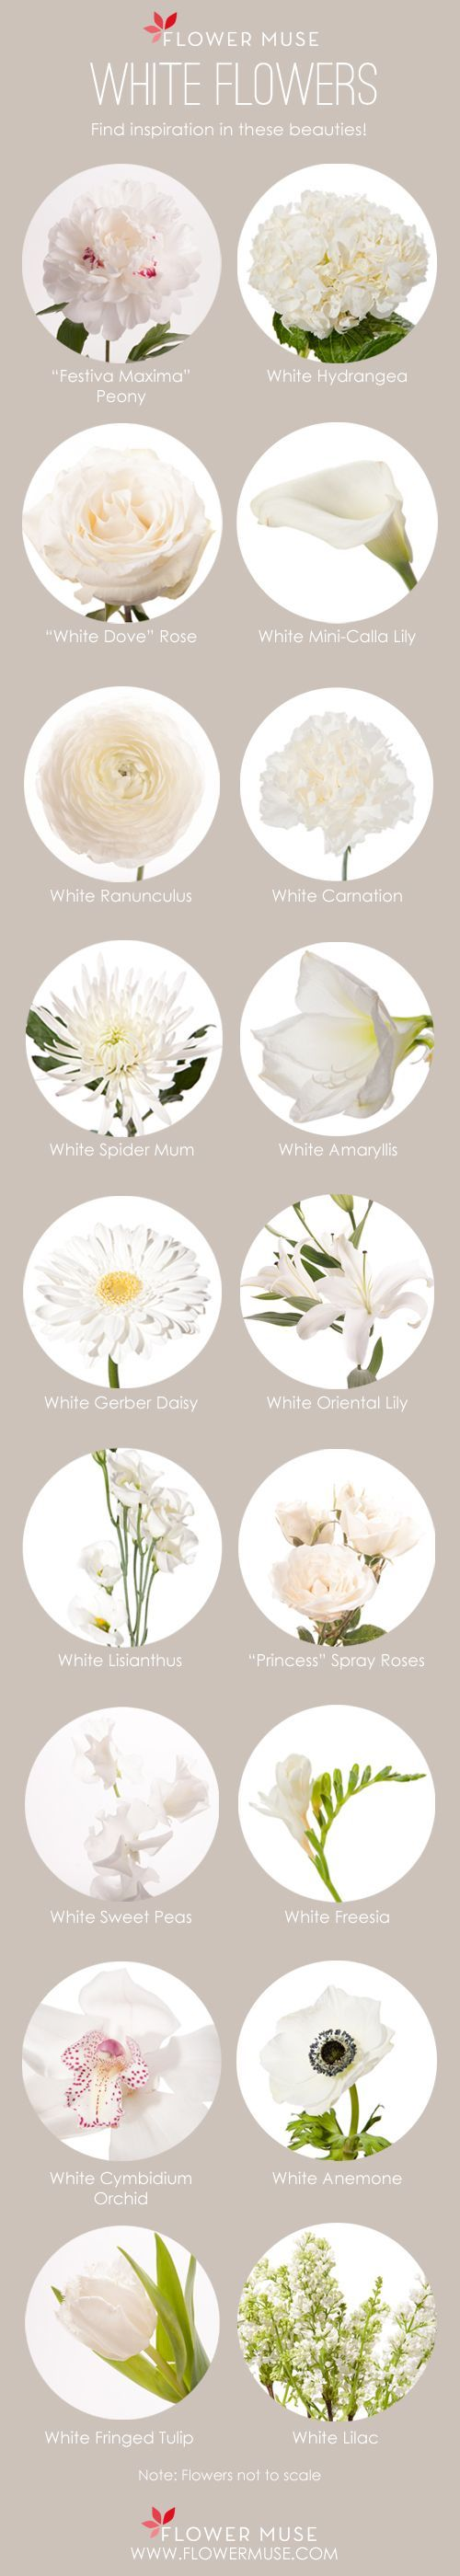 14 amazing white wedding bouquet photos you will love is part of White wedding bouquets - Take a look at 14 amazing white wedding bouquet photos you will love in the photos below and get ideas for your wedding!!! Flower Muse Our Favorite White Flowers for a beautiful wedding bouquet Image source